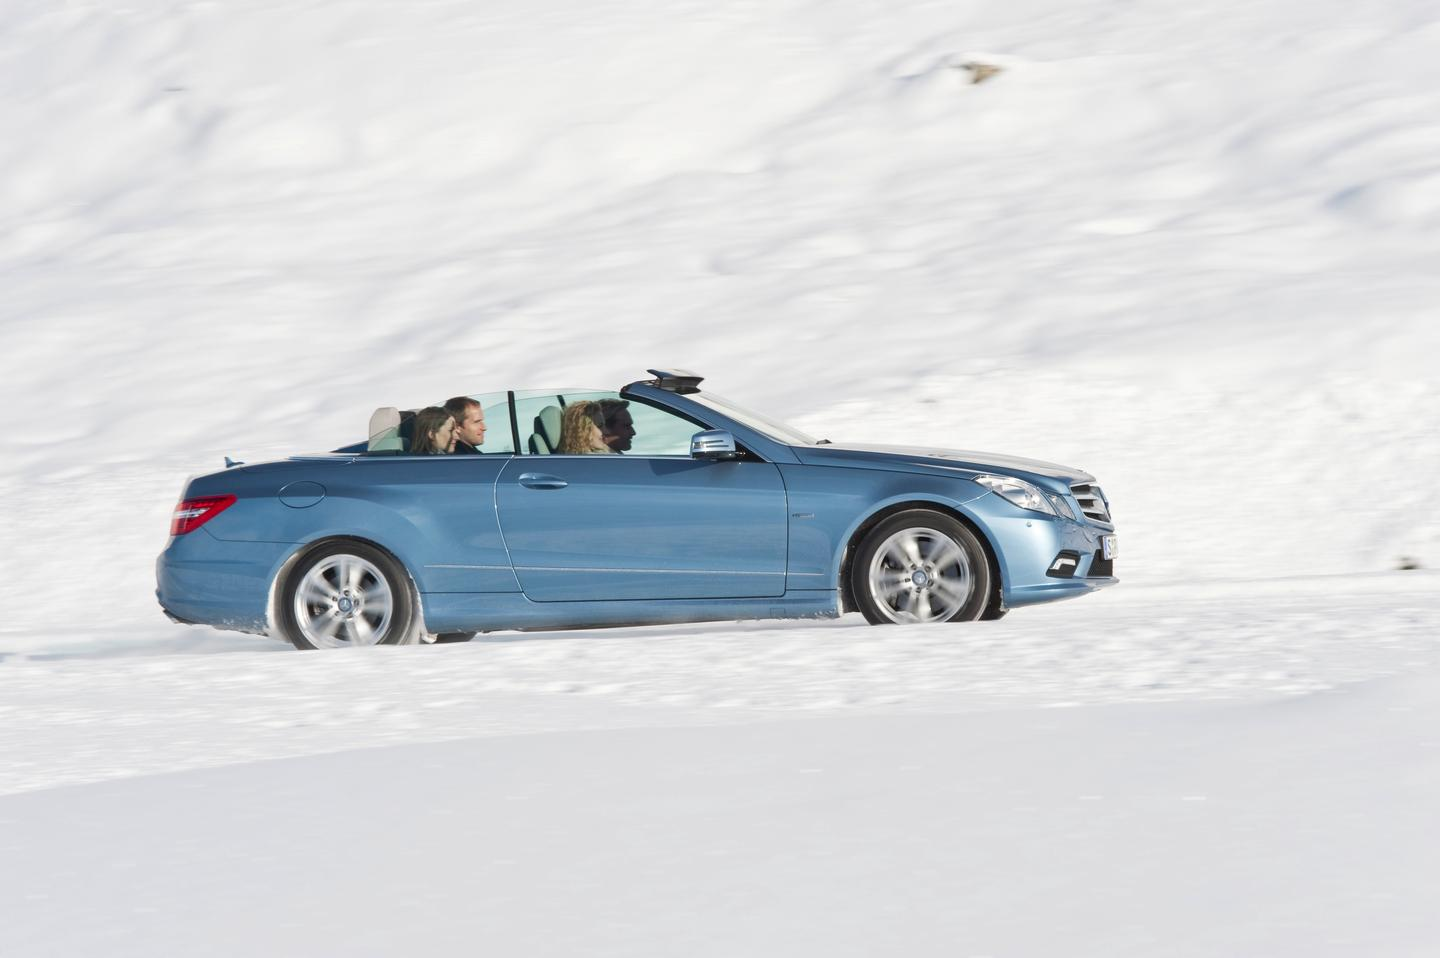 The Mercedes-Benz 2011MY E-Class Cabriolet, with AIRCAP deployed above windshield and between back seats